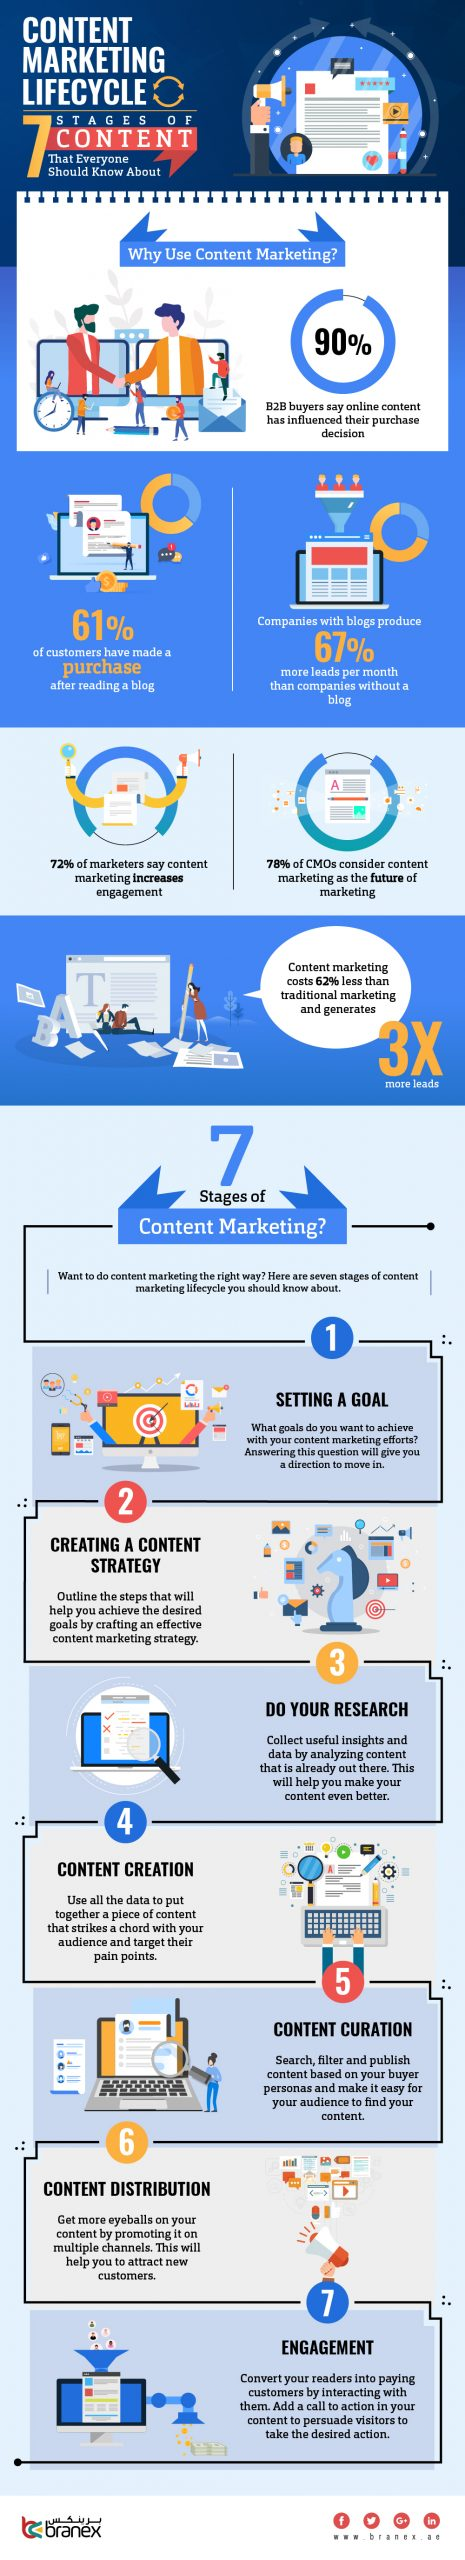 Content Marketing Lifecycle Infographic